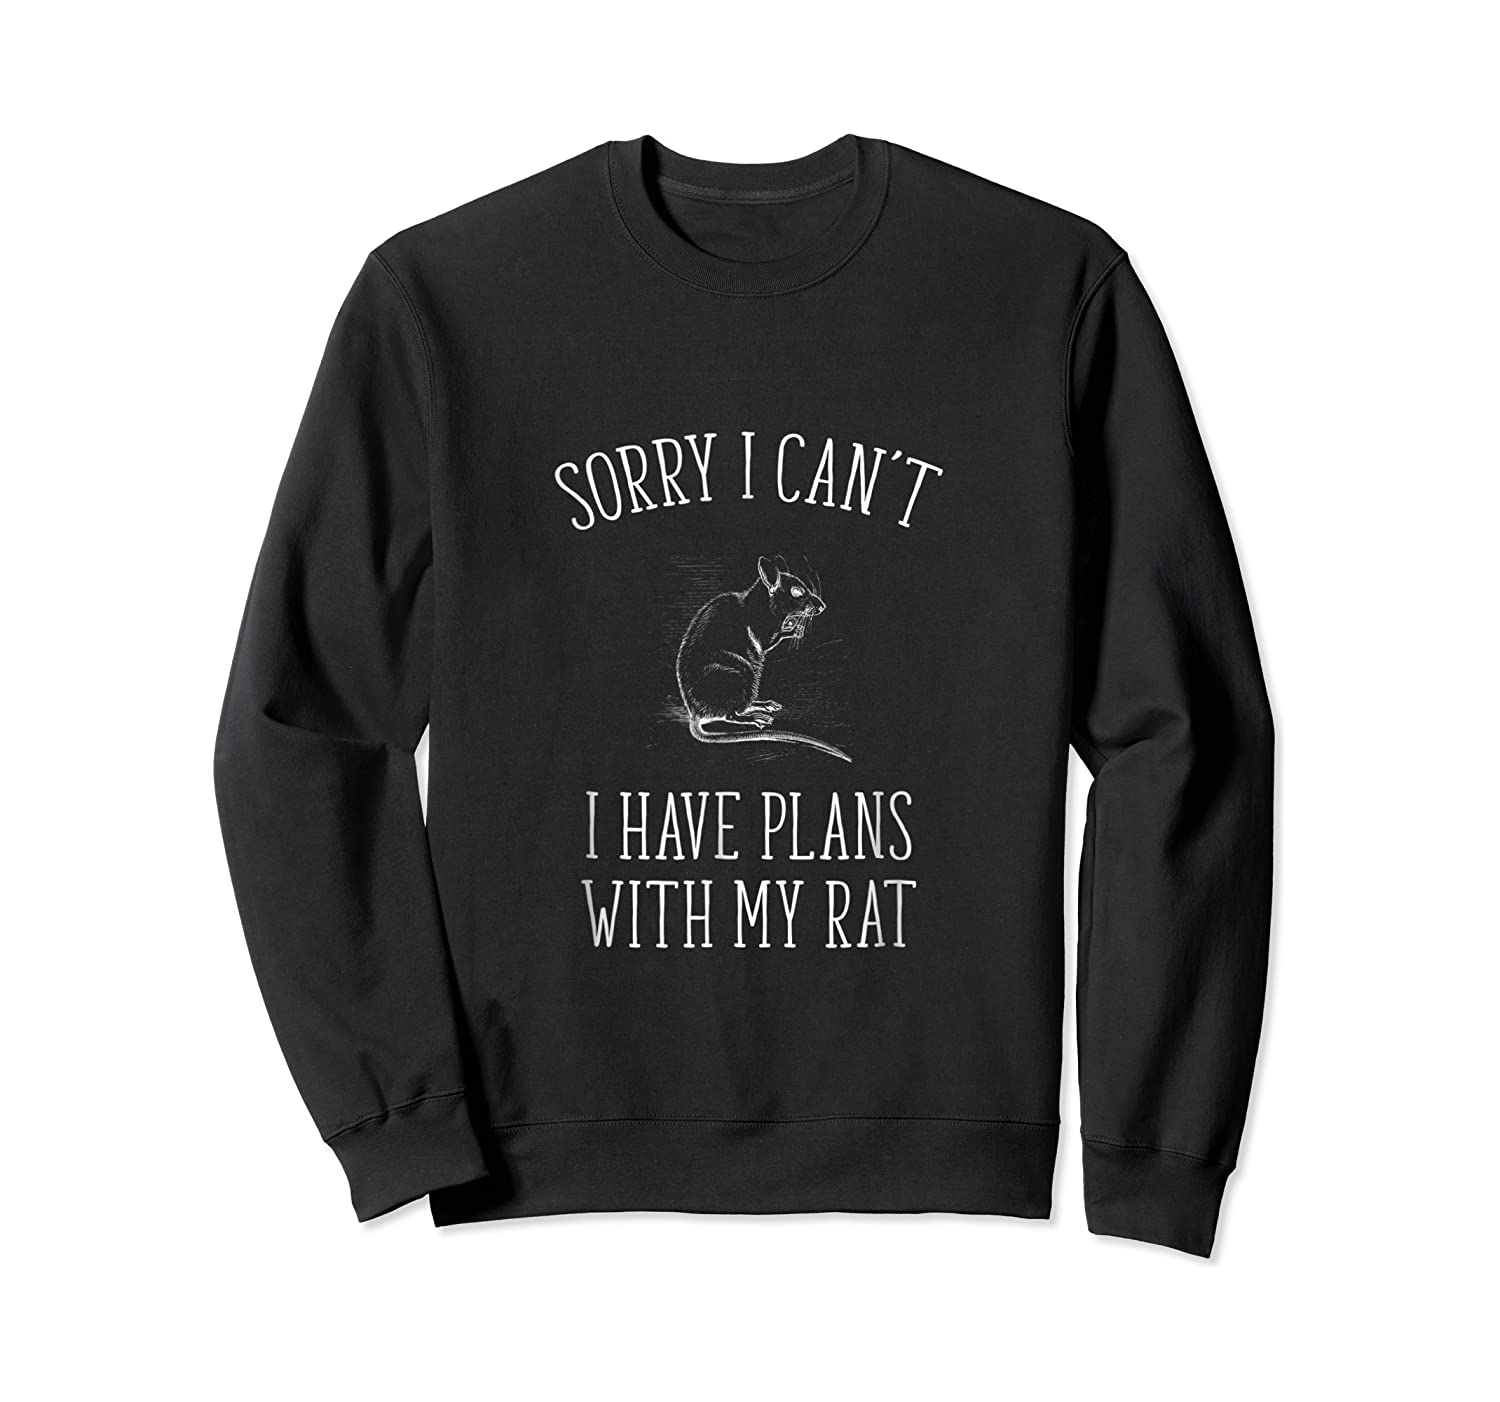 Sorry I Cant Funny Pet Mouse Or Rat Owner Gift Shirt - W Crewneck Sweater